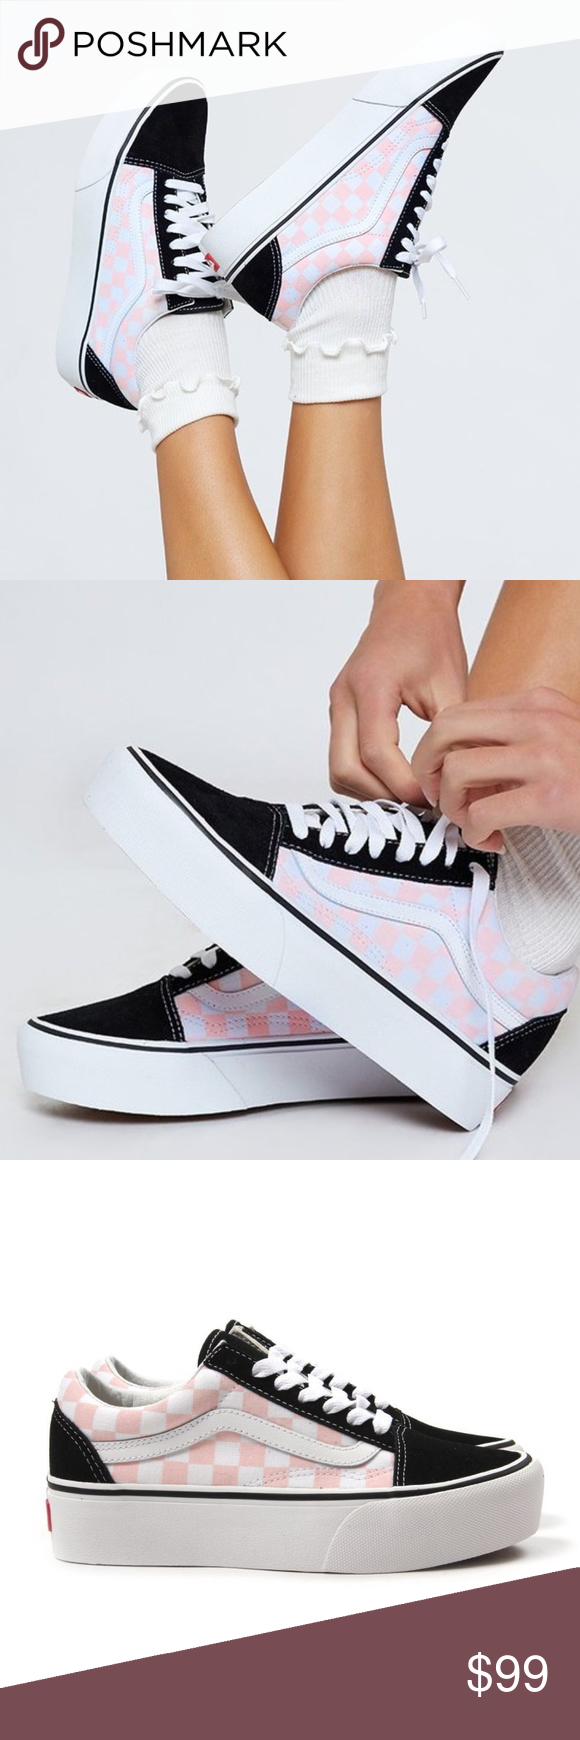 pink and white checkered vans old skool